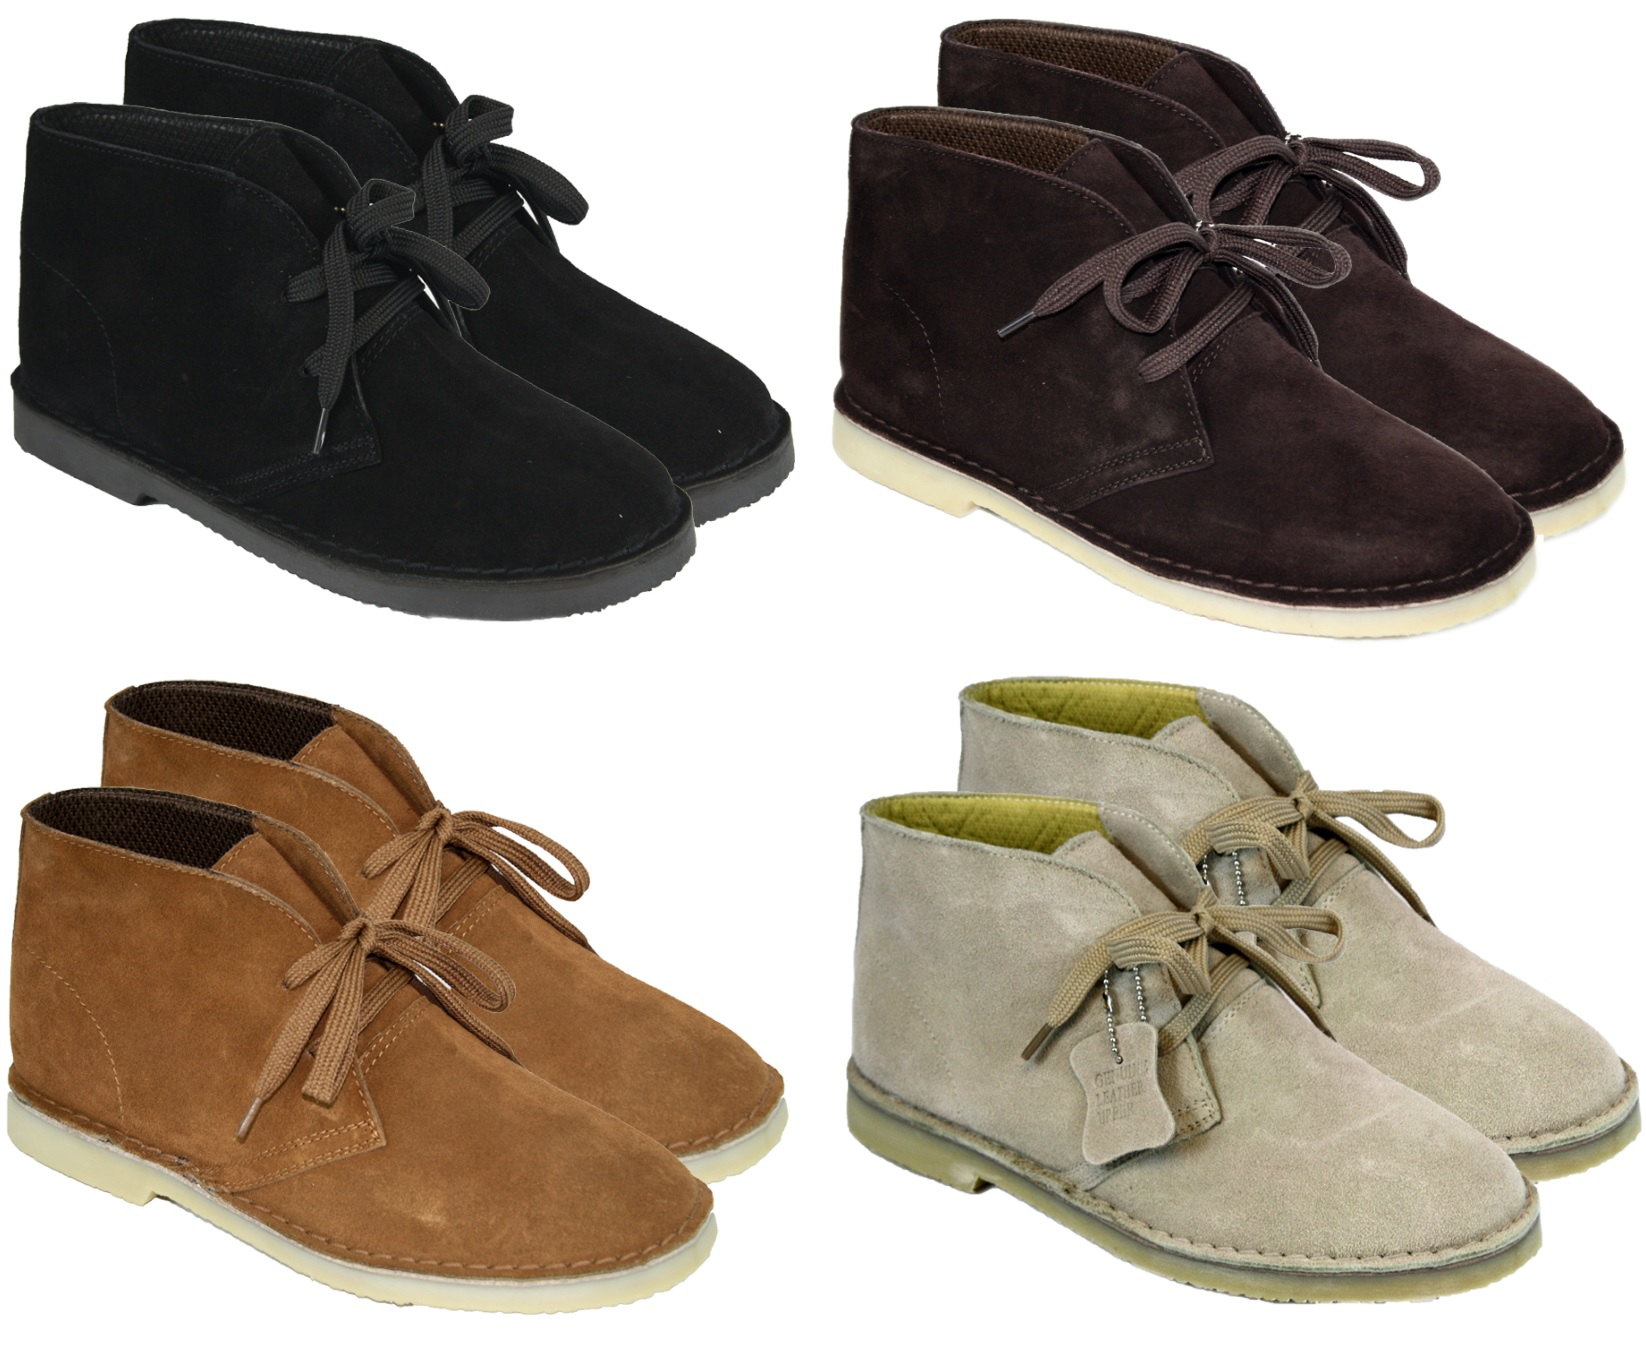 NEW MENS DESERT BOOTS SUEDE LEATHER LACE UP ANKLE DESERTS TRAINERS SHOES 6-12